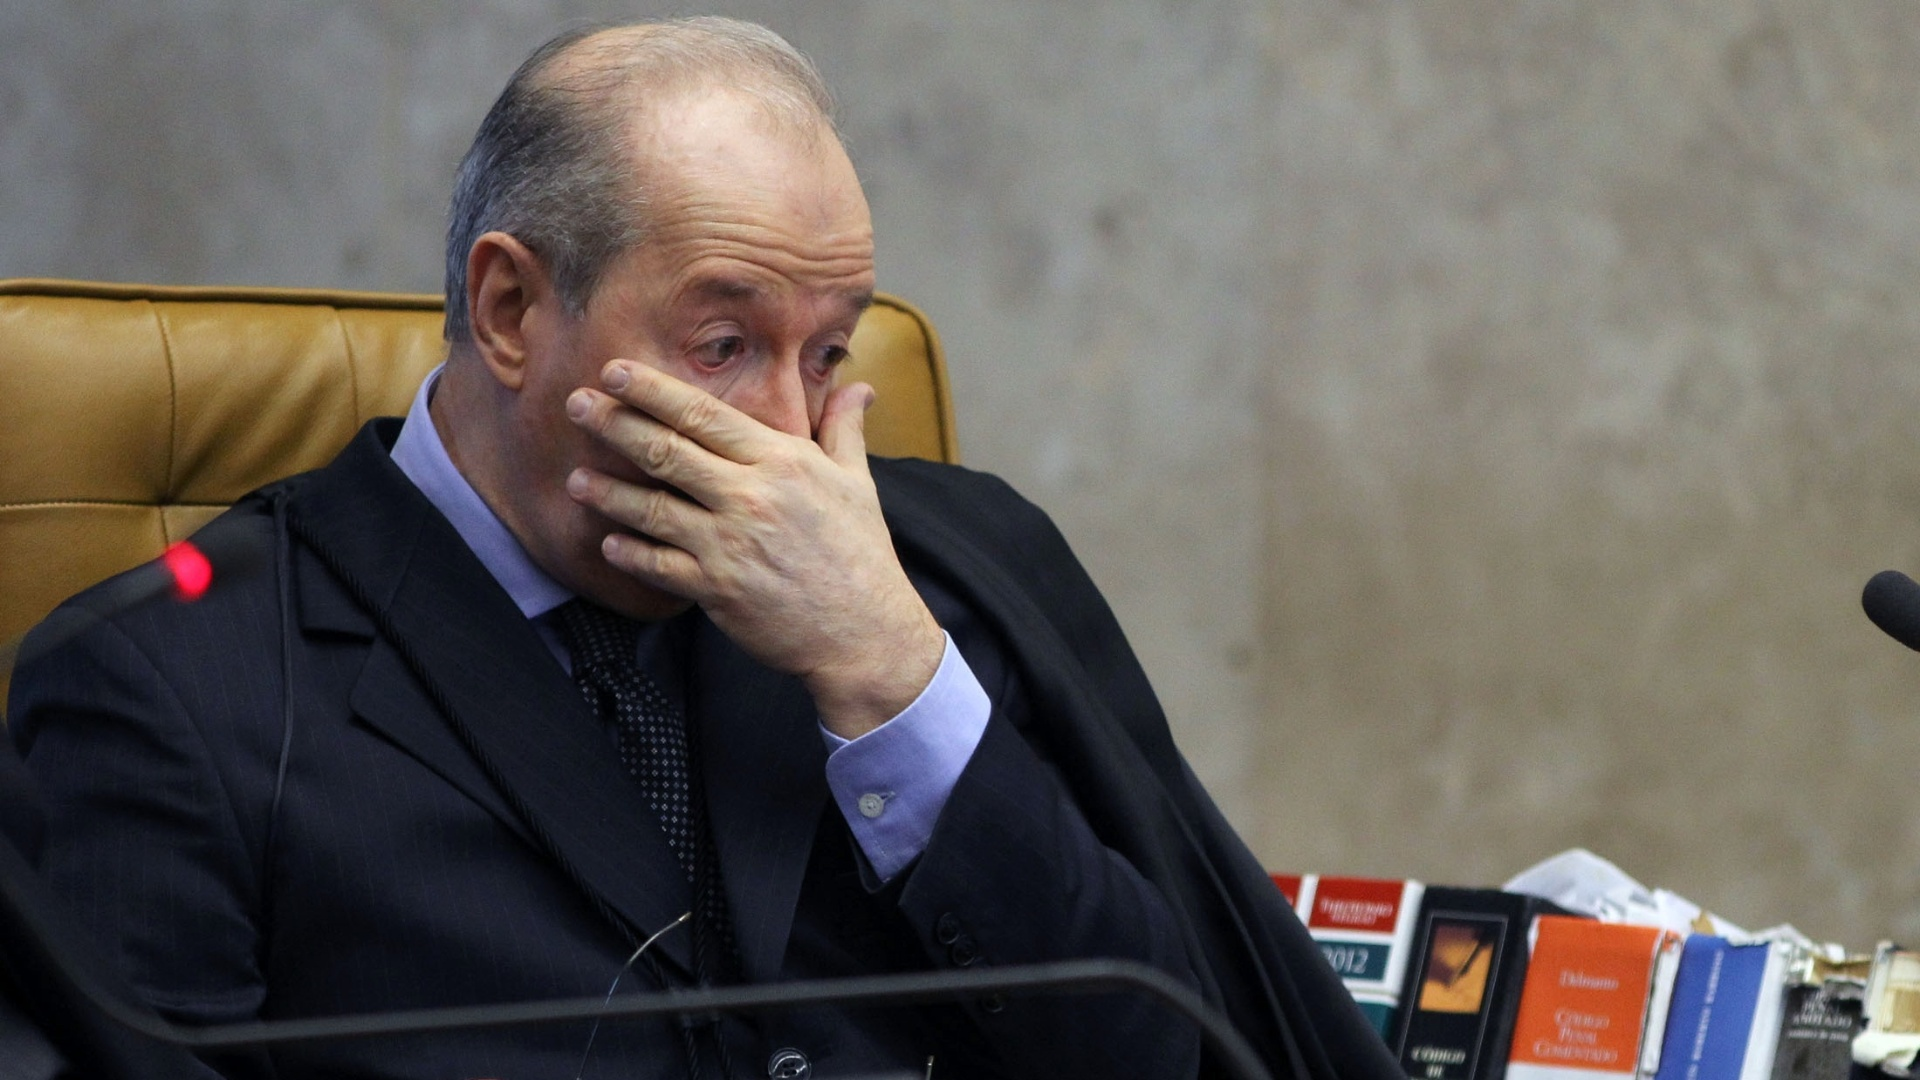 1.out.2012 - O ministro Celso de Mello acompanha a retomada do julgamento do mensalo, no STF, em Braslia. O ministro Dias Toffoli votou pela condenao de trs rus ligados ao ex-PL, atual PR